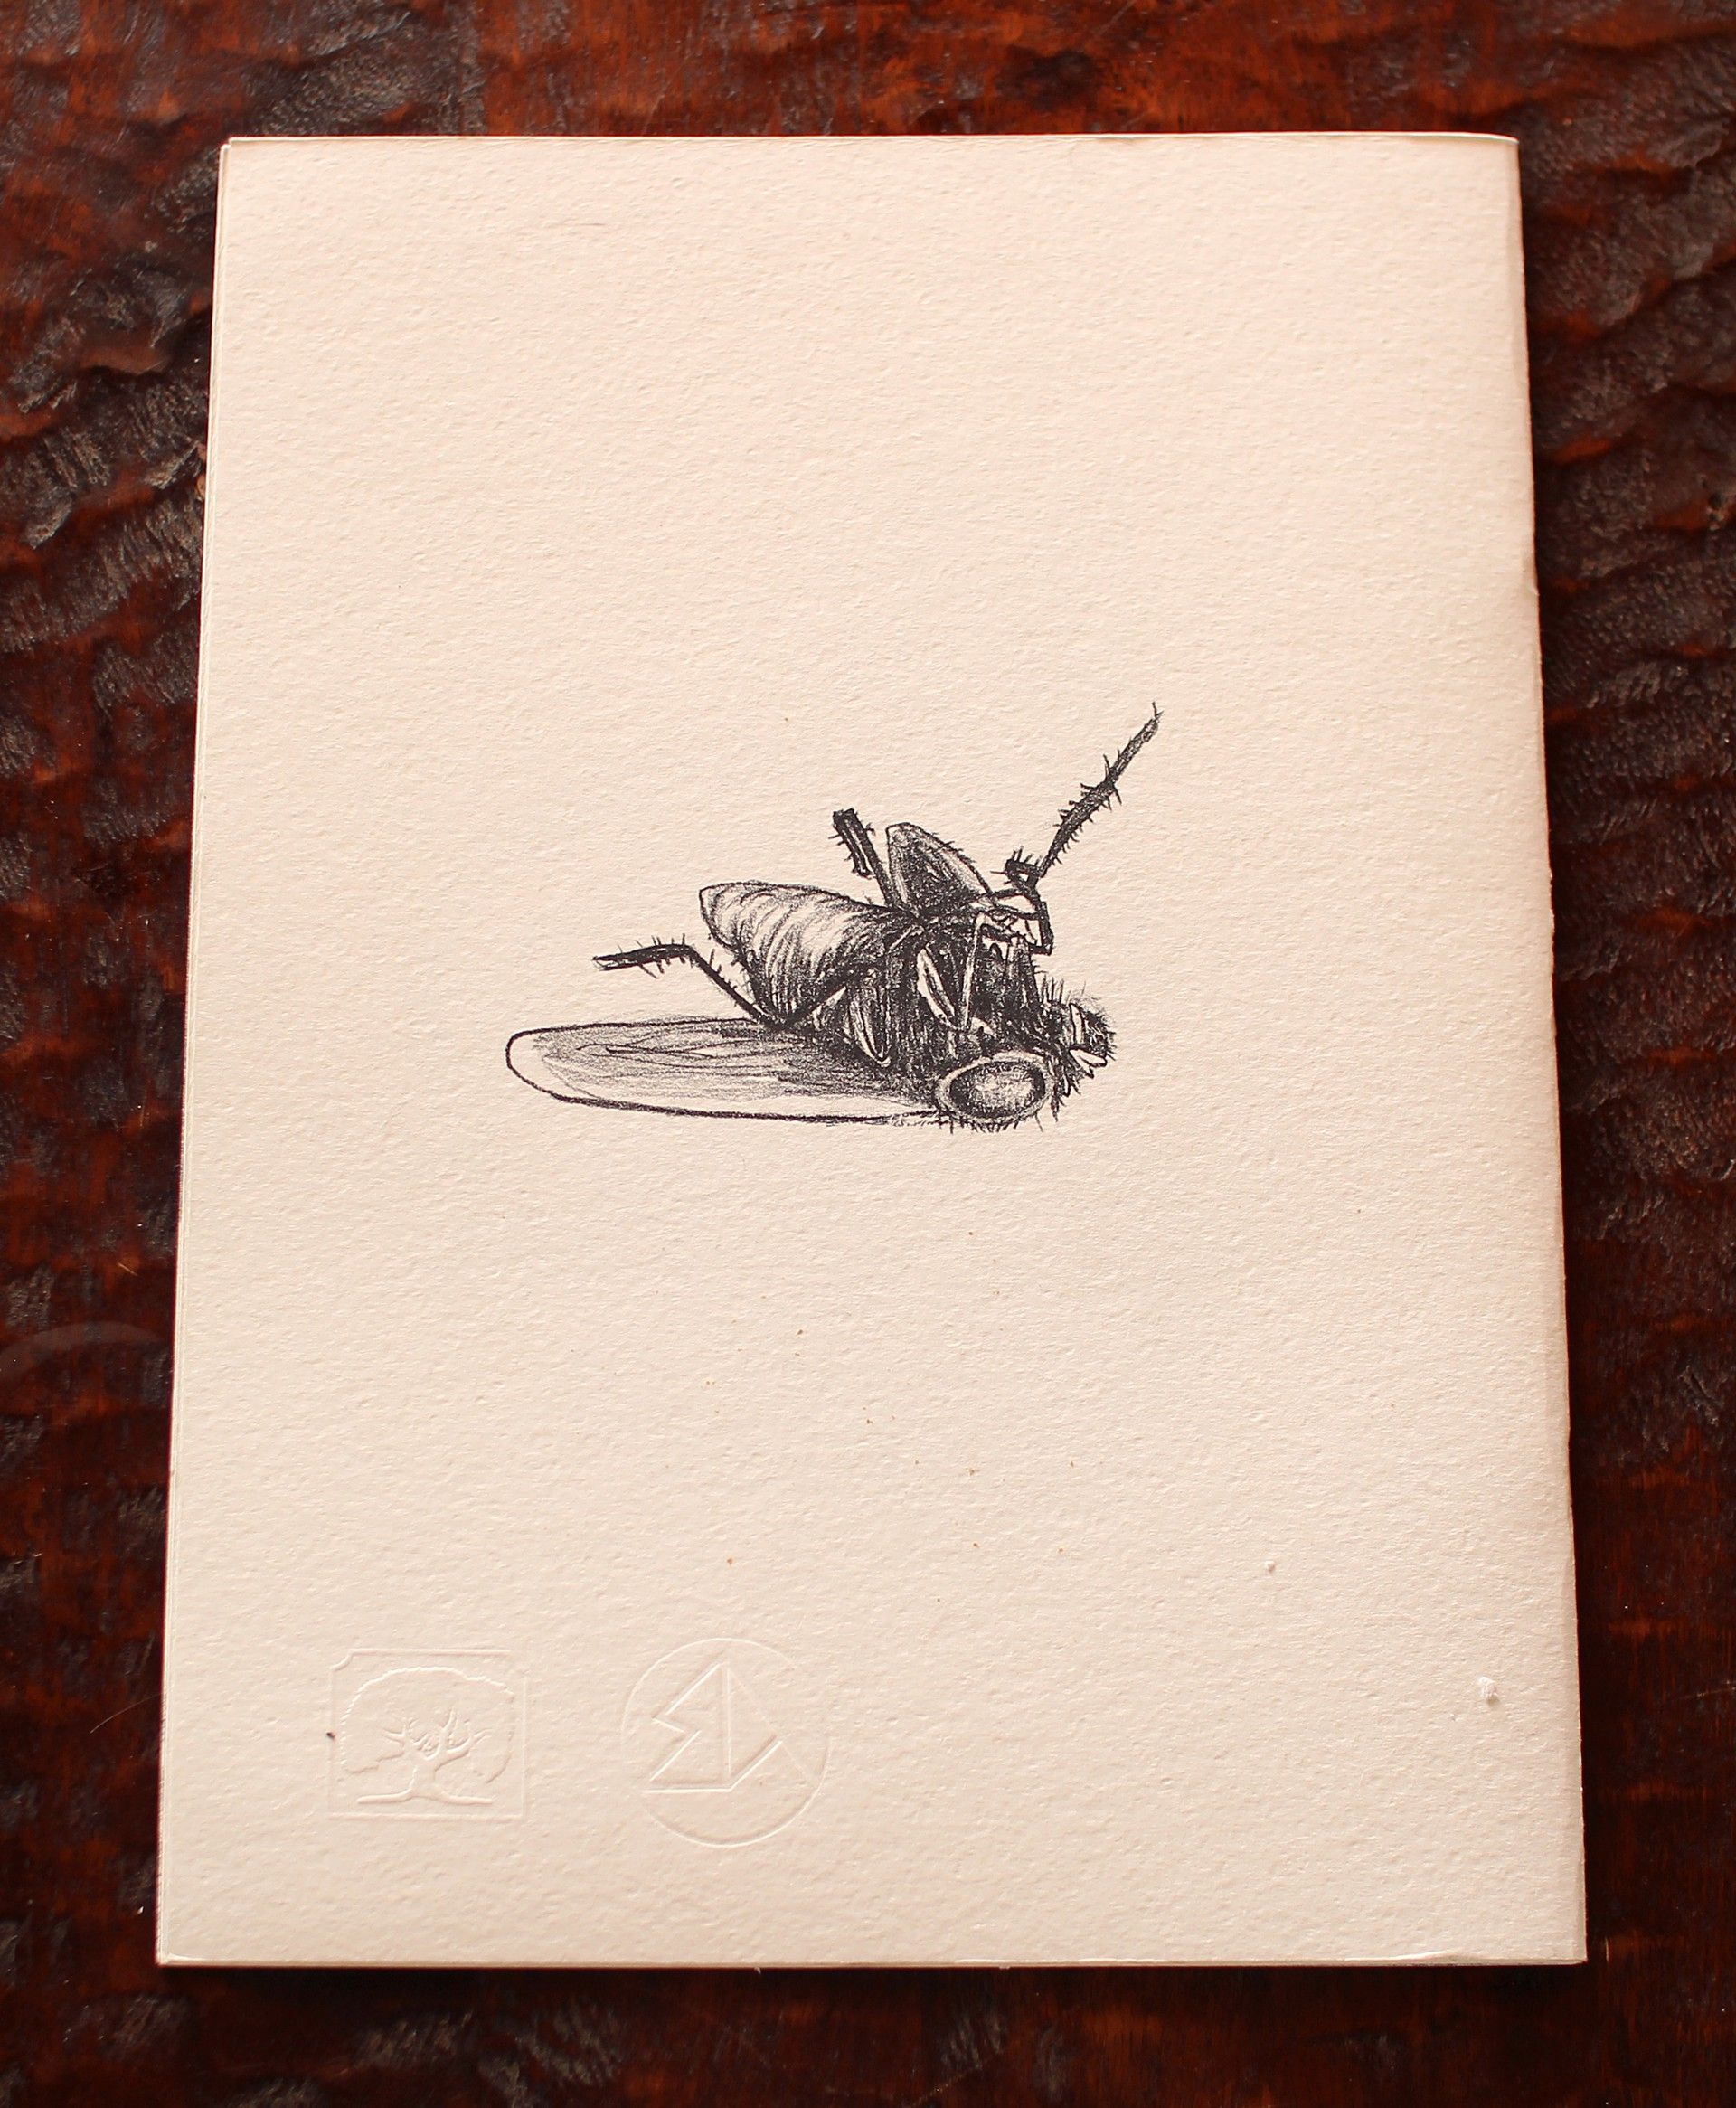 Mosca Muerta by Polvoh Press